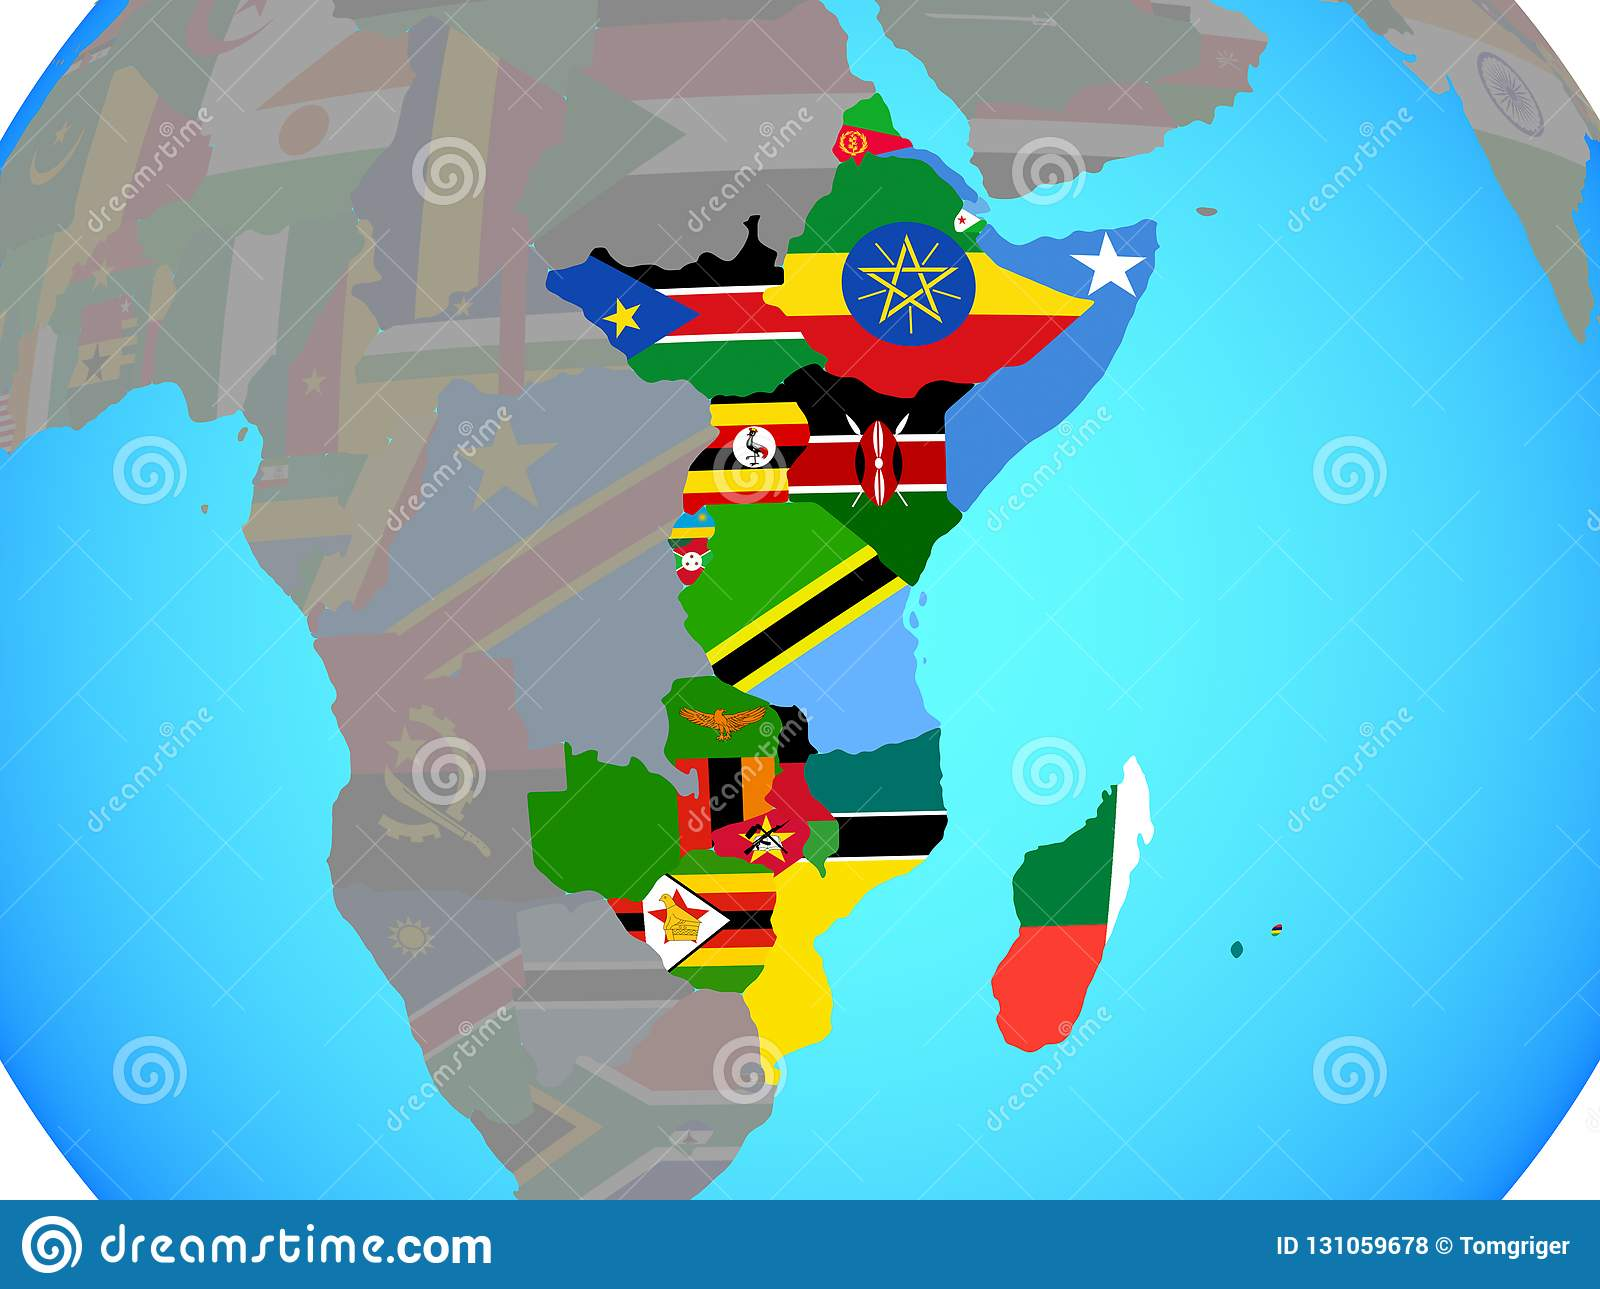 Map Of Africa With Flags.East Africa With Flags On Map Stock Illustration Illustration Of